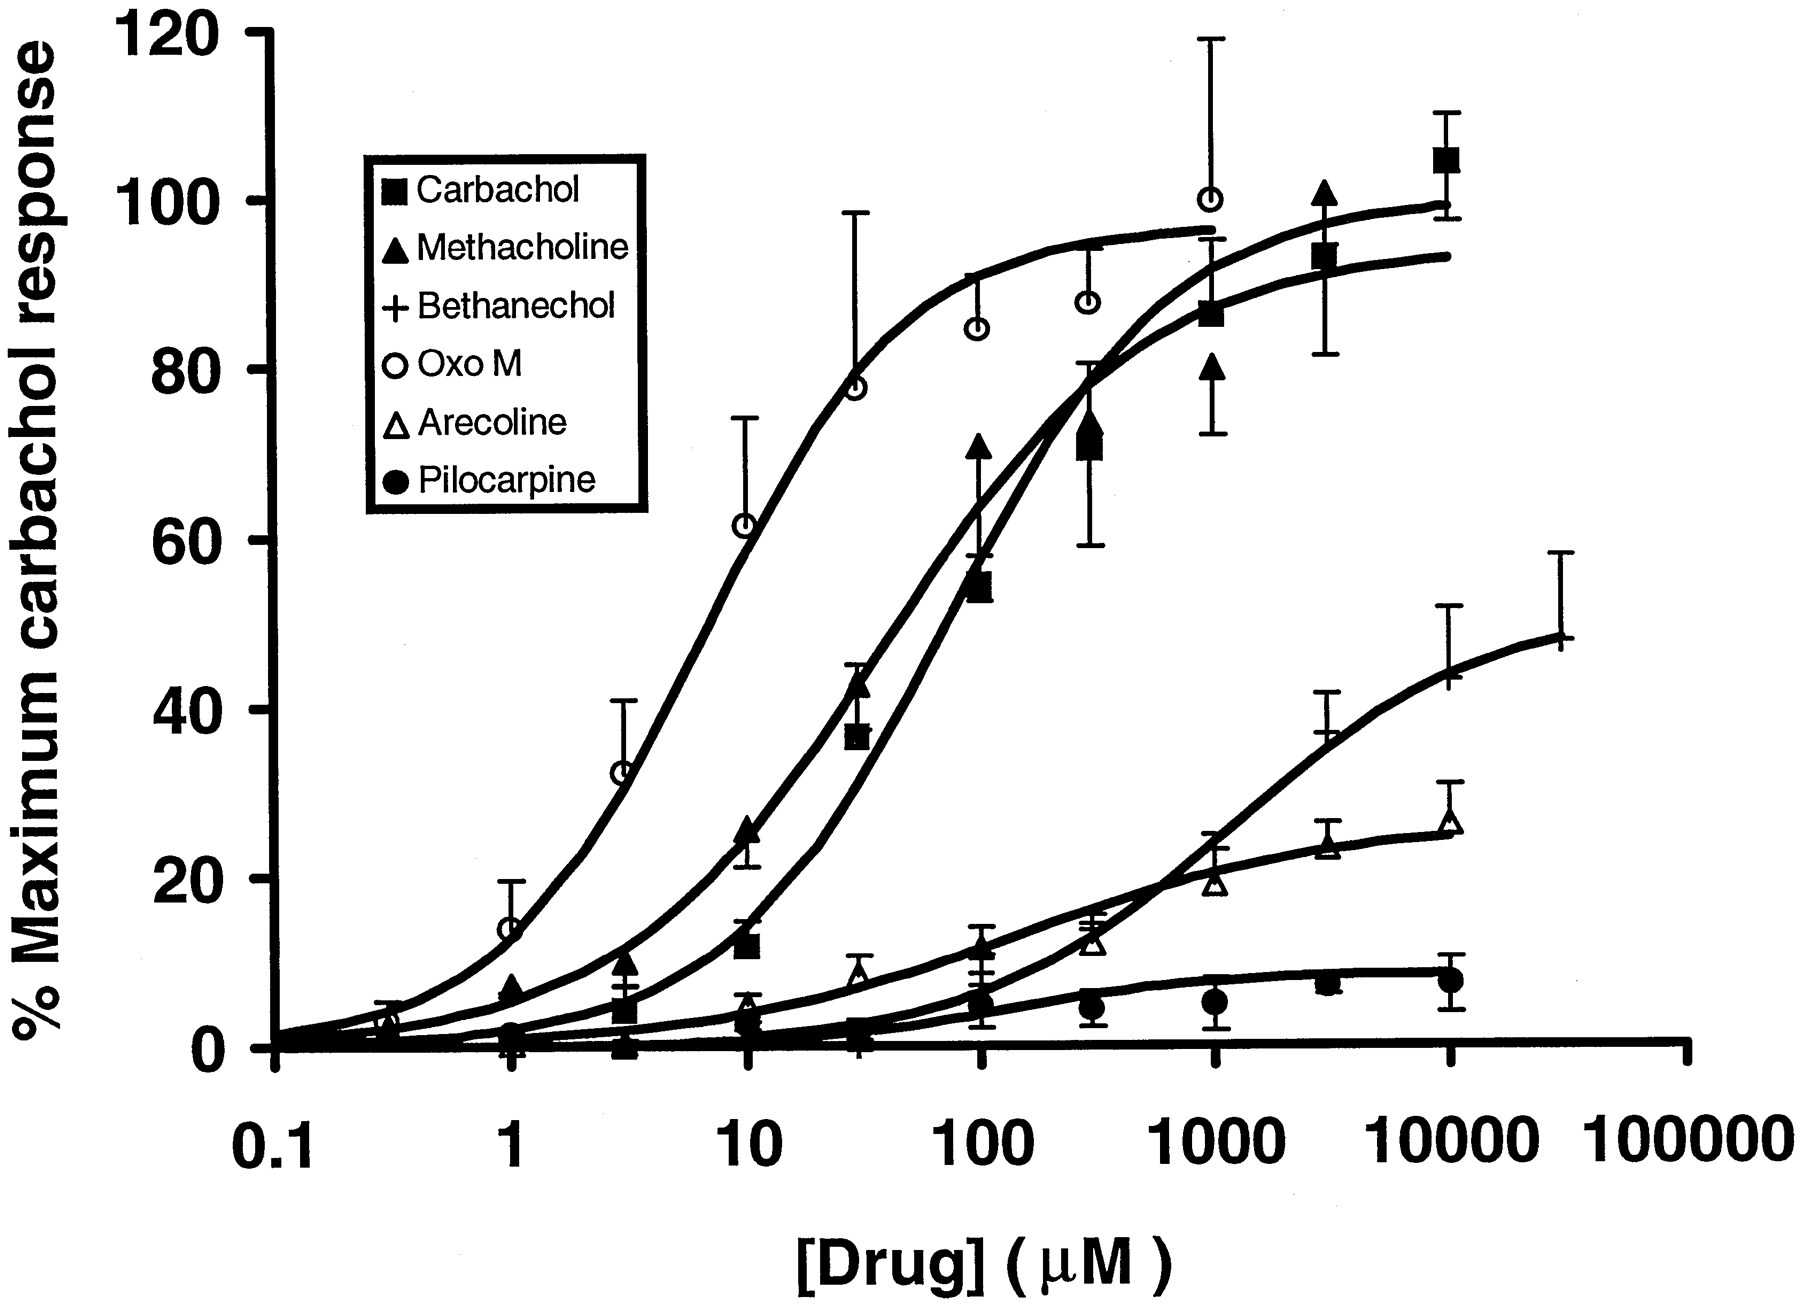 The Relationship between Agonist Intrinsic Activity and